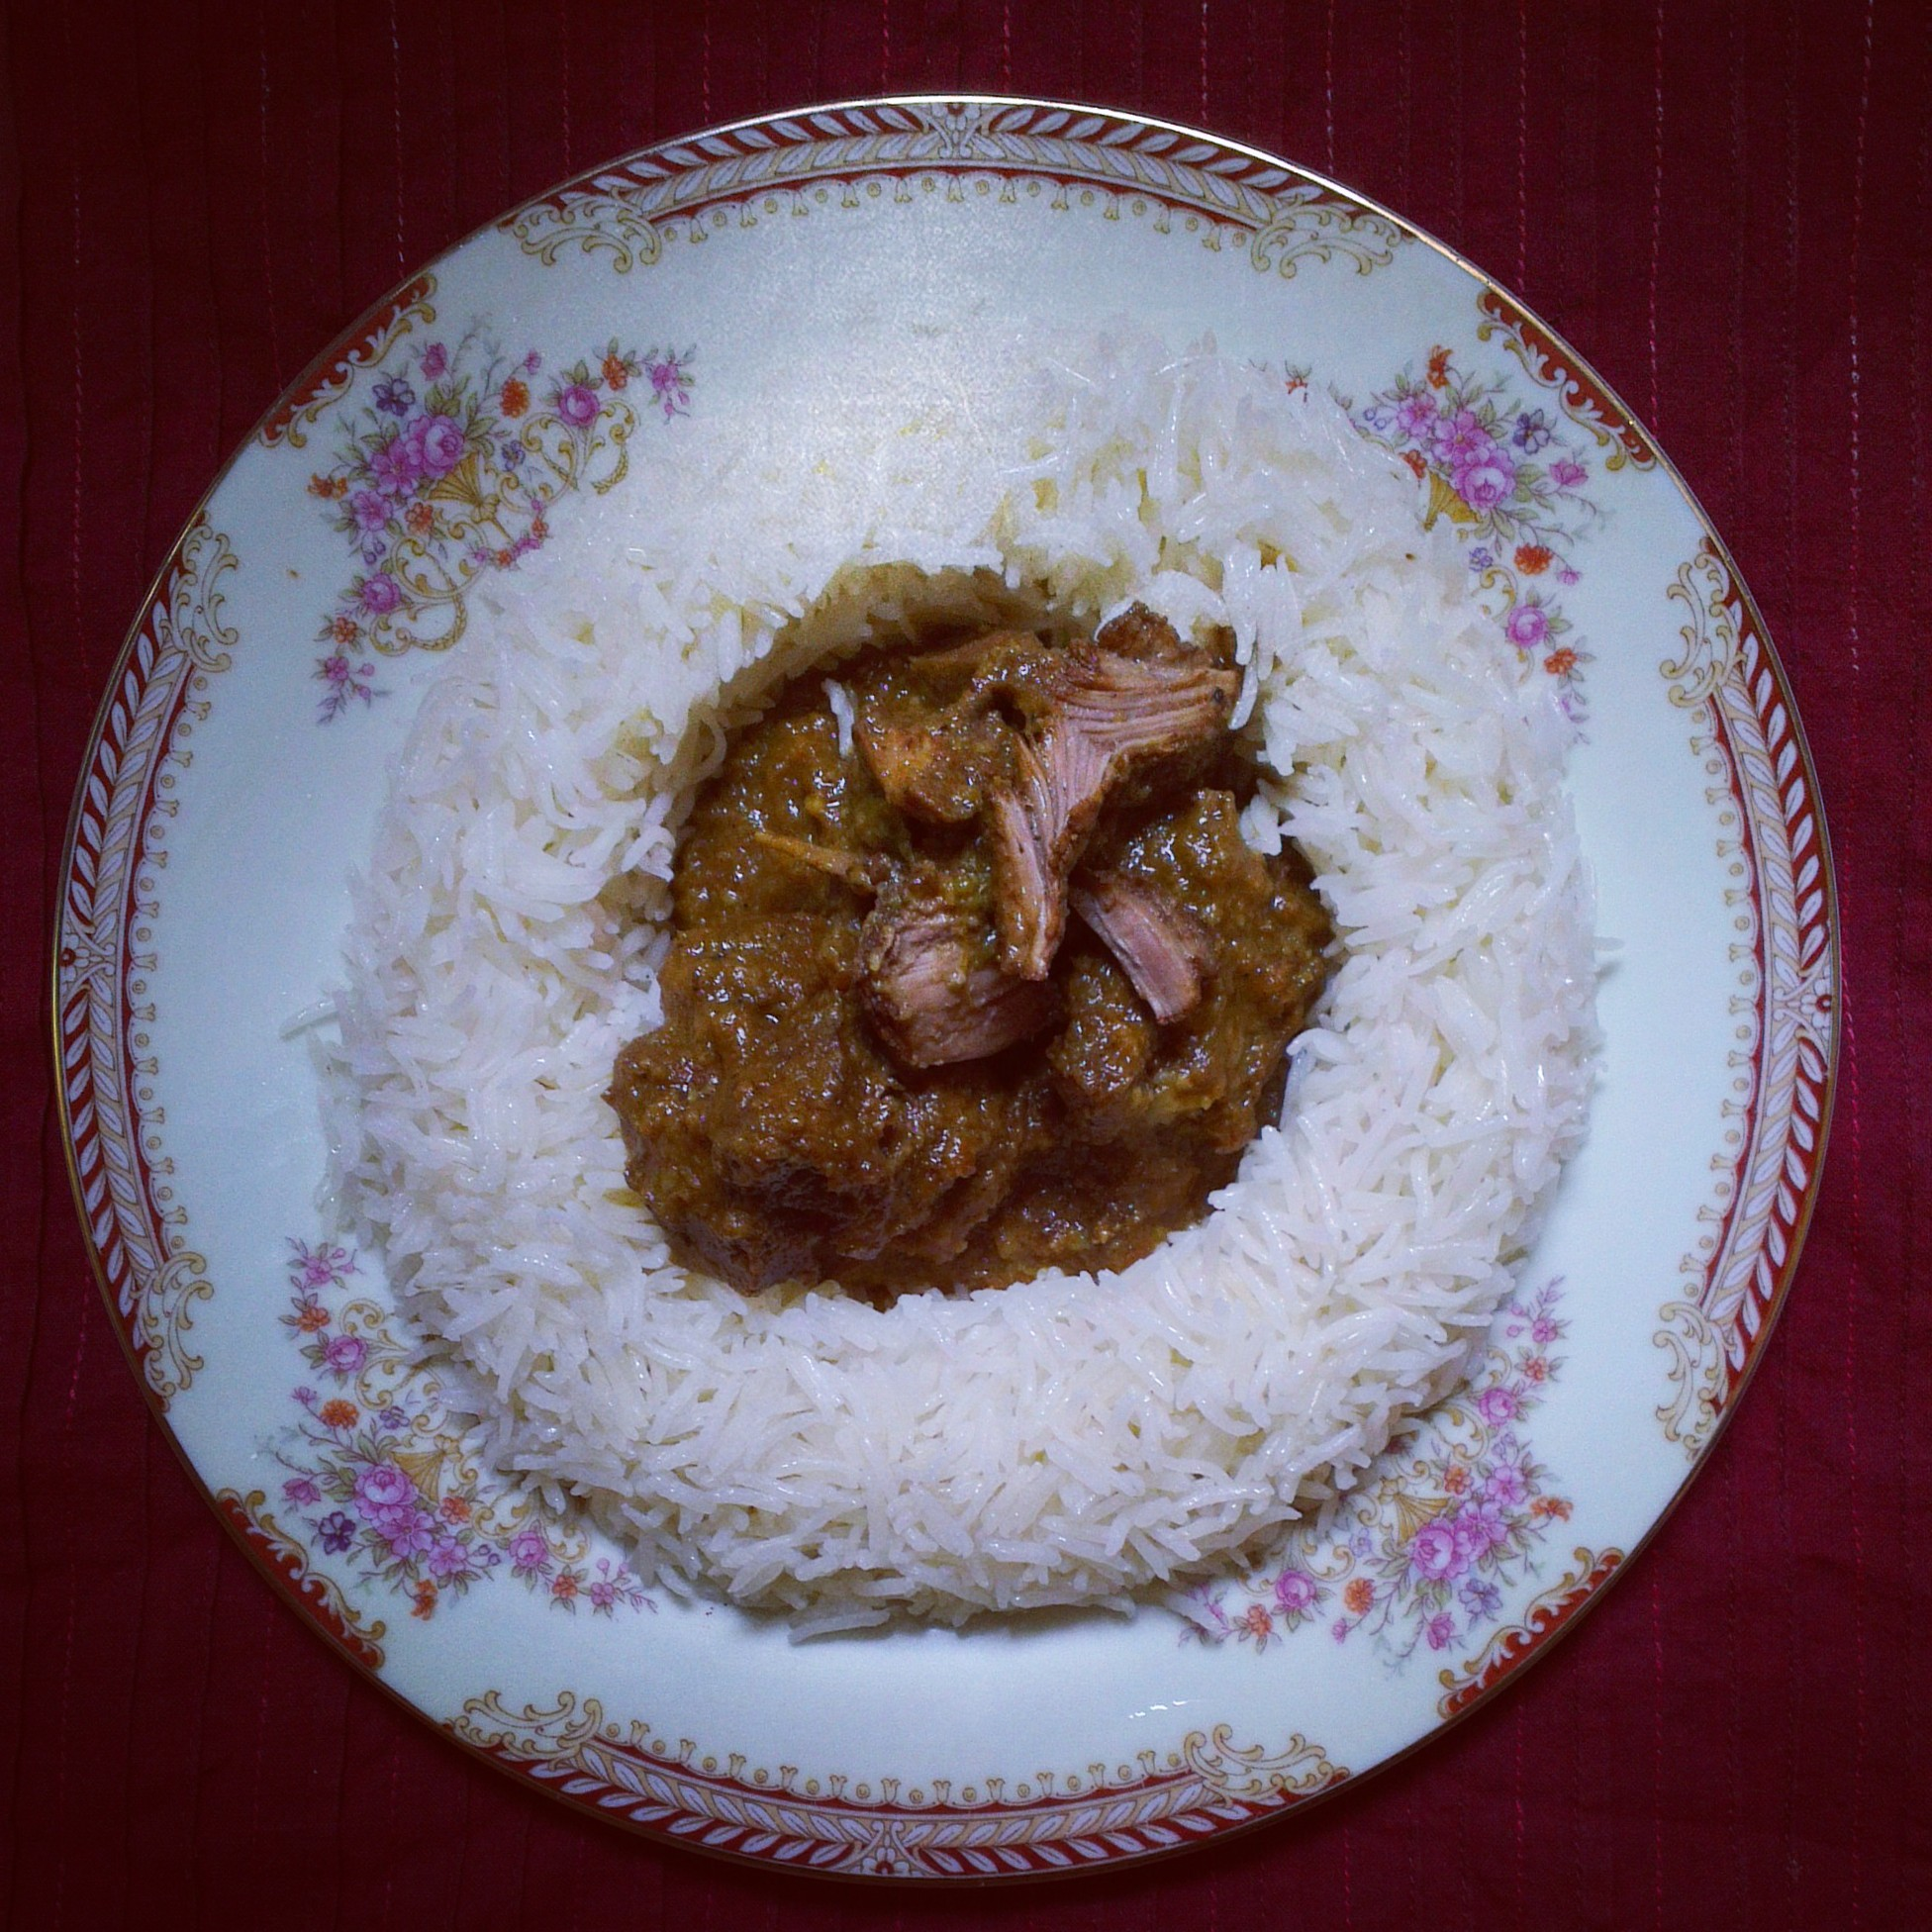 Mutton curry and rice